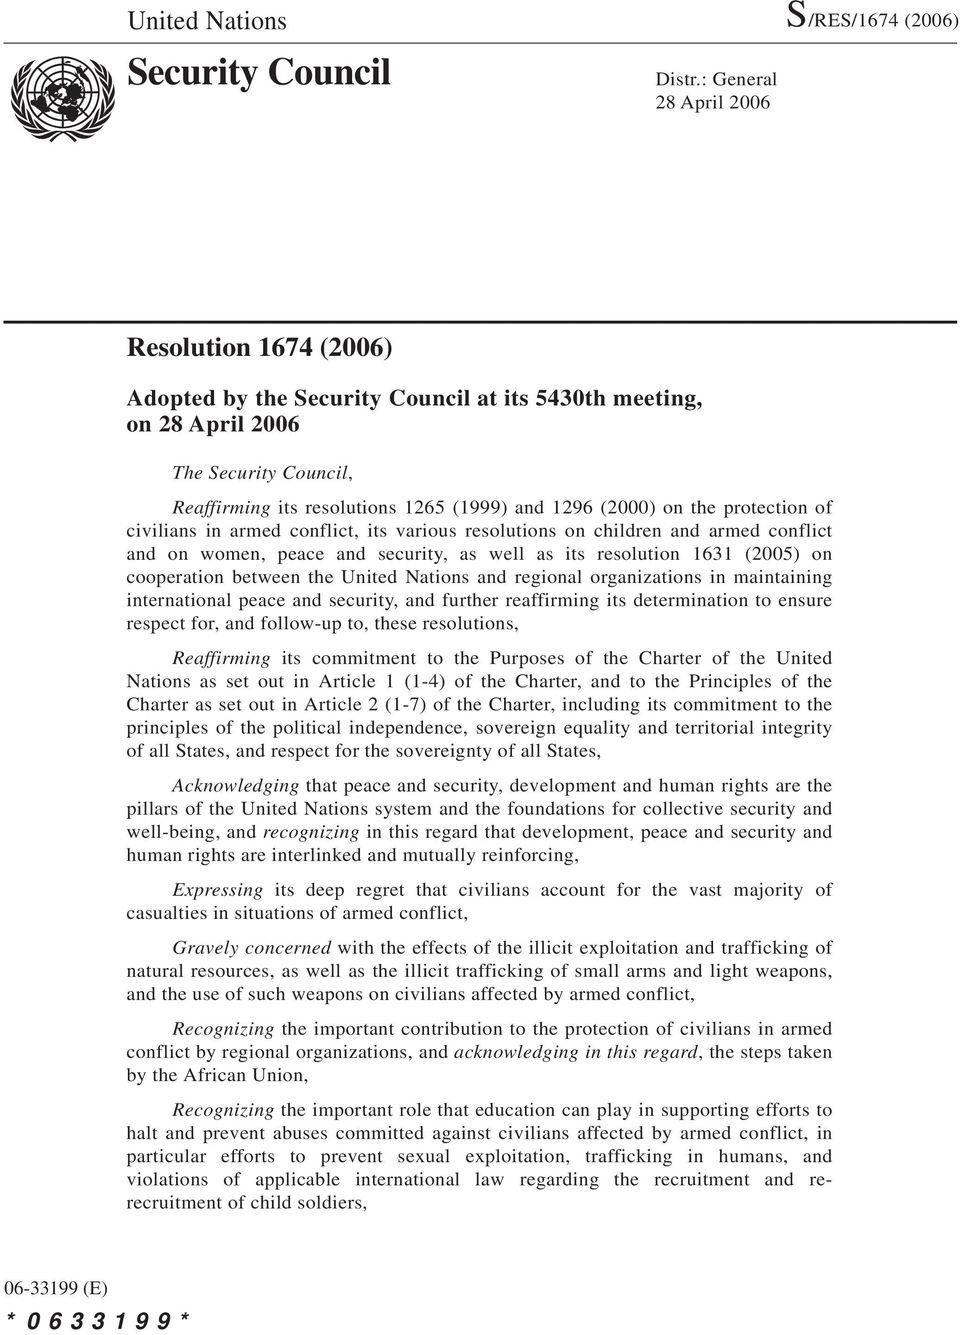 the protection of civilians in armed conflict, its various resolutions on children and armed conflict and on women, peace and security, as well as its resolution 1631 (2005) on cooperation between